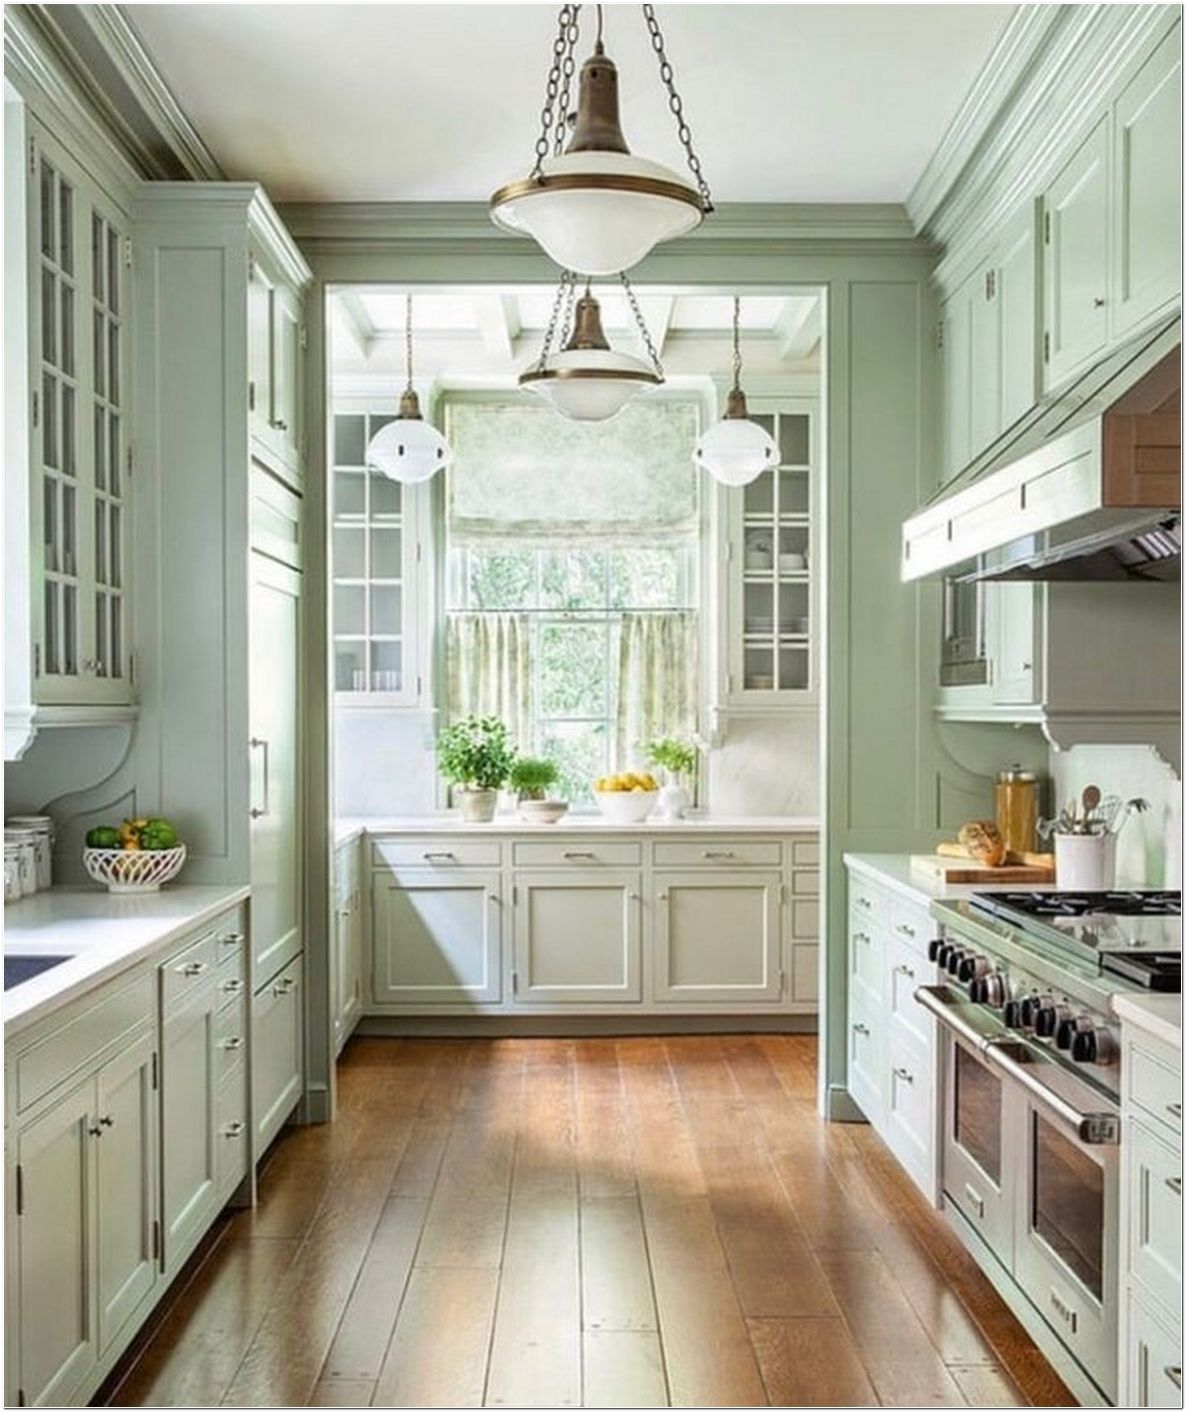 96+ Beautiful Simple French Country Kitchen Ideas For